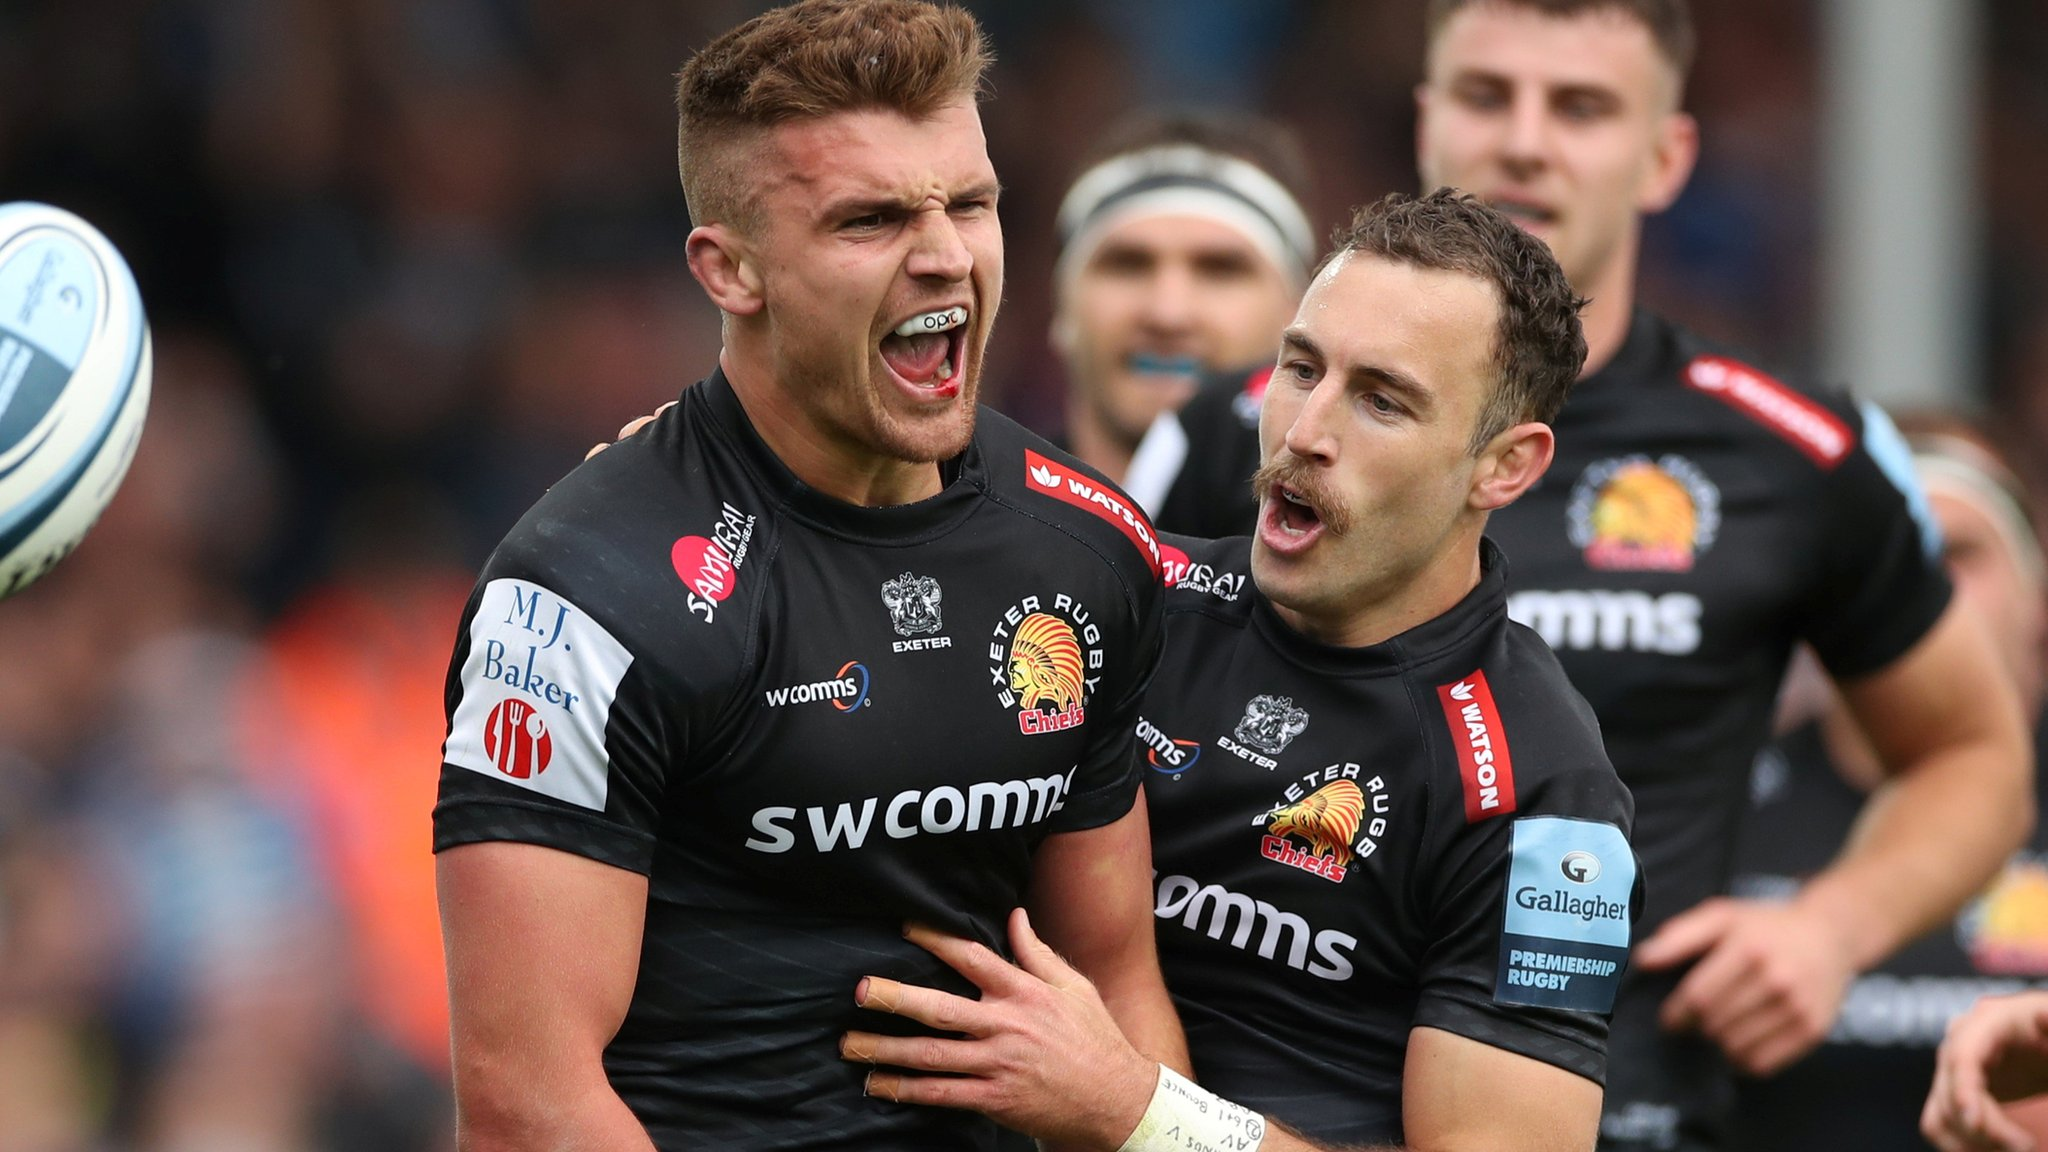 Exeter beat Saints to finish top of Premiership